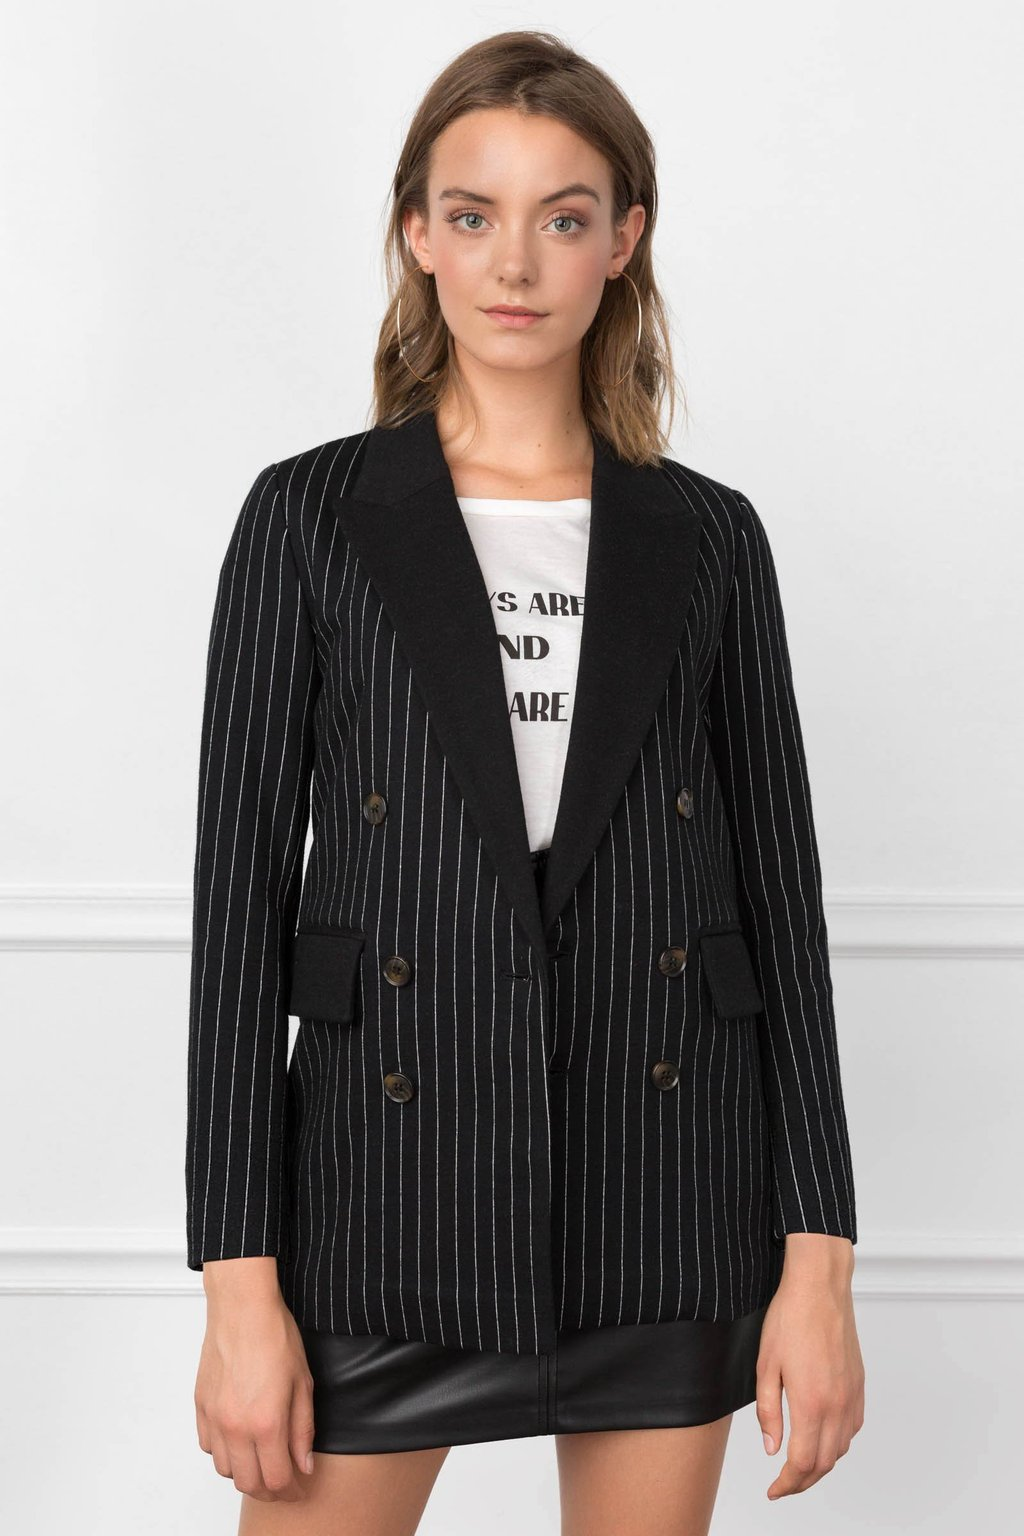 Black Pinstriped Women's blazer by J.ING